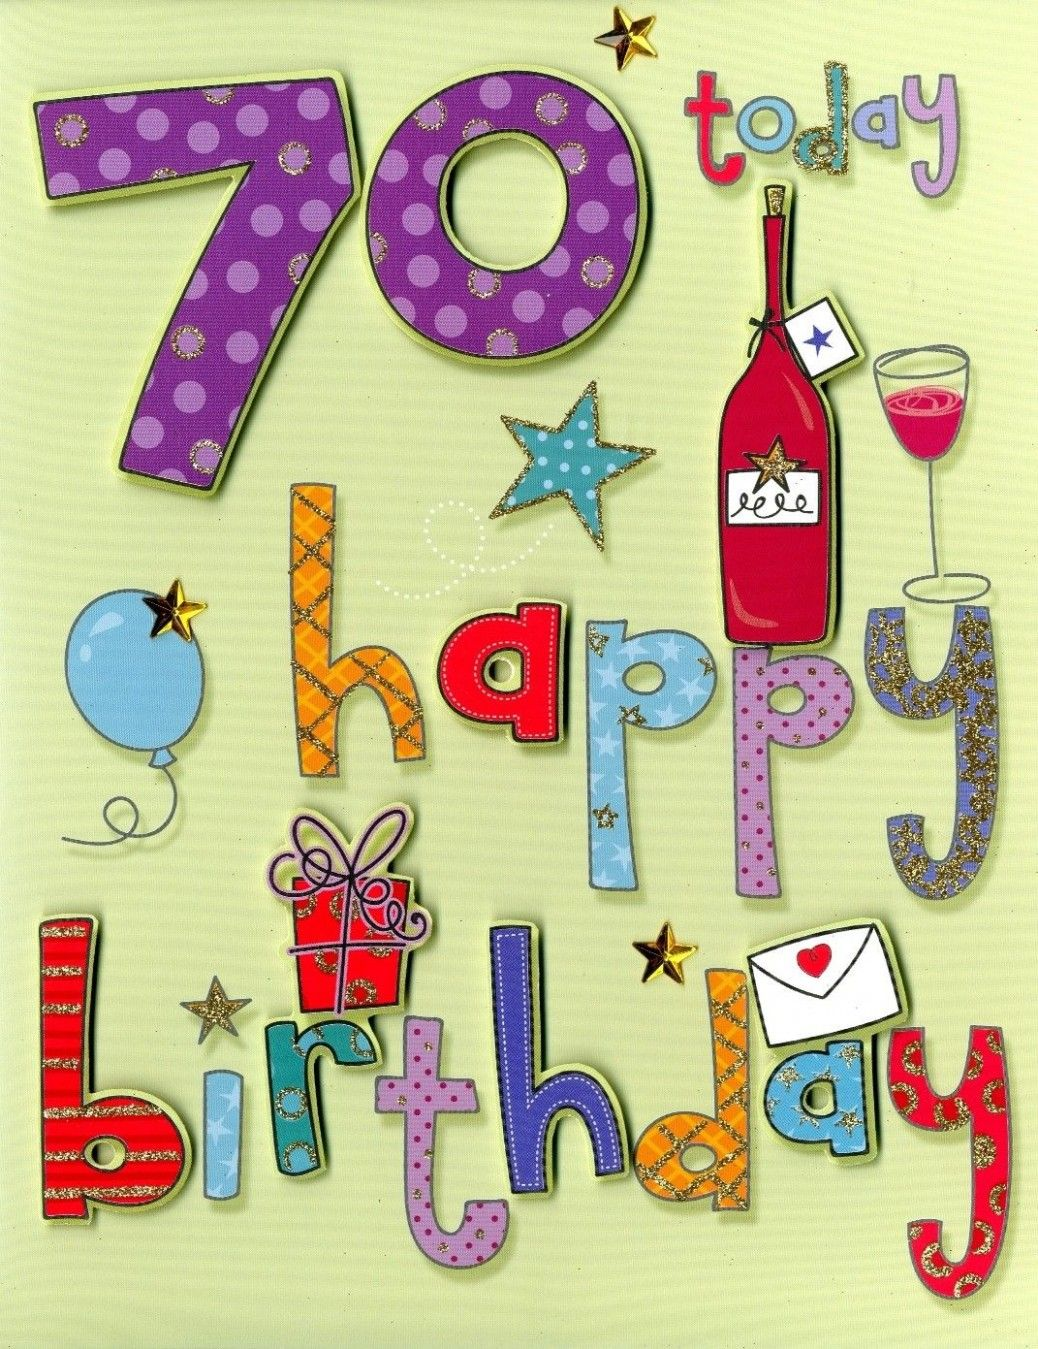 11 Awesome 70th Birthday Wishes In 2021 70th Birthday Card Happy 70 Birthday Happy Birthday Cards